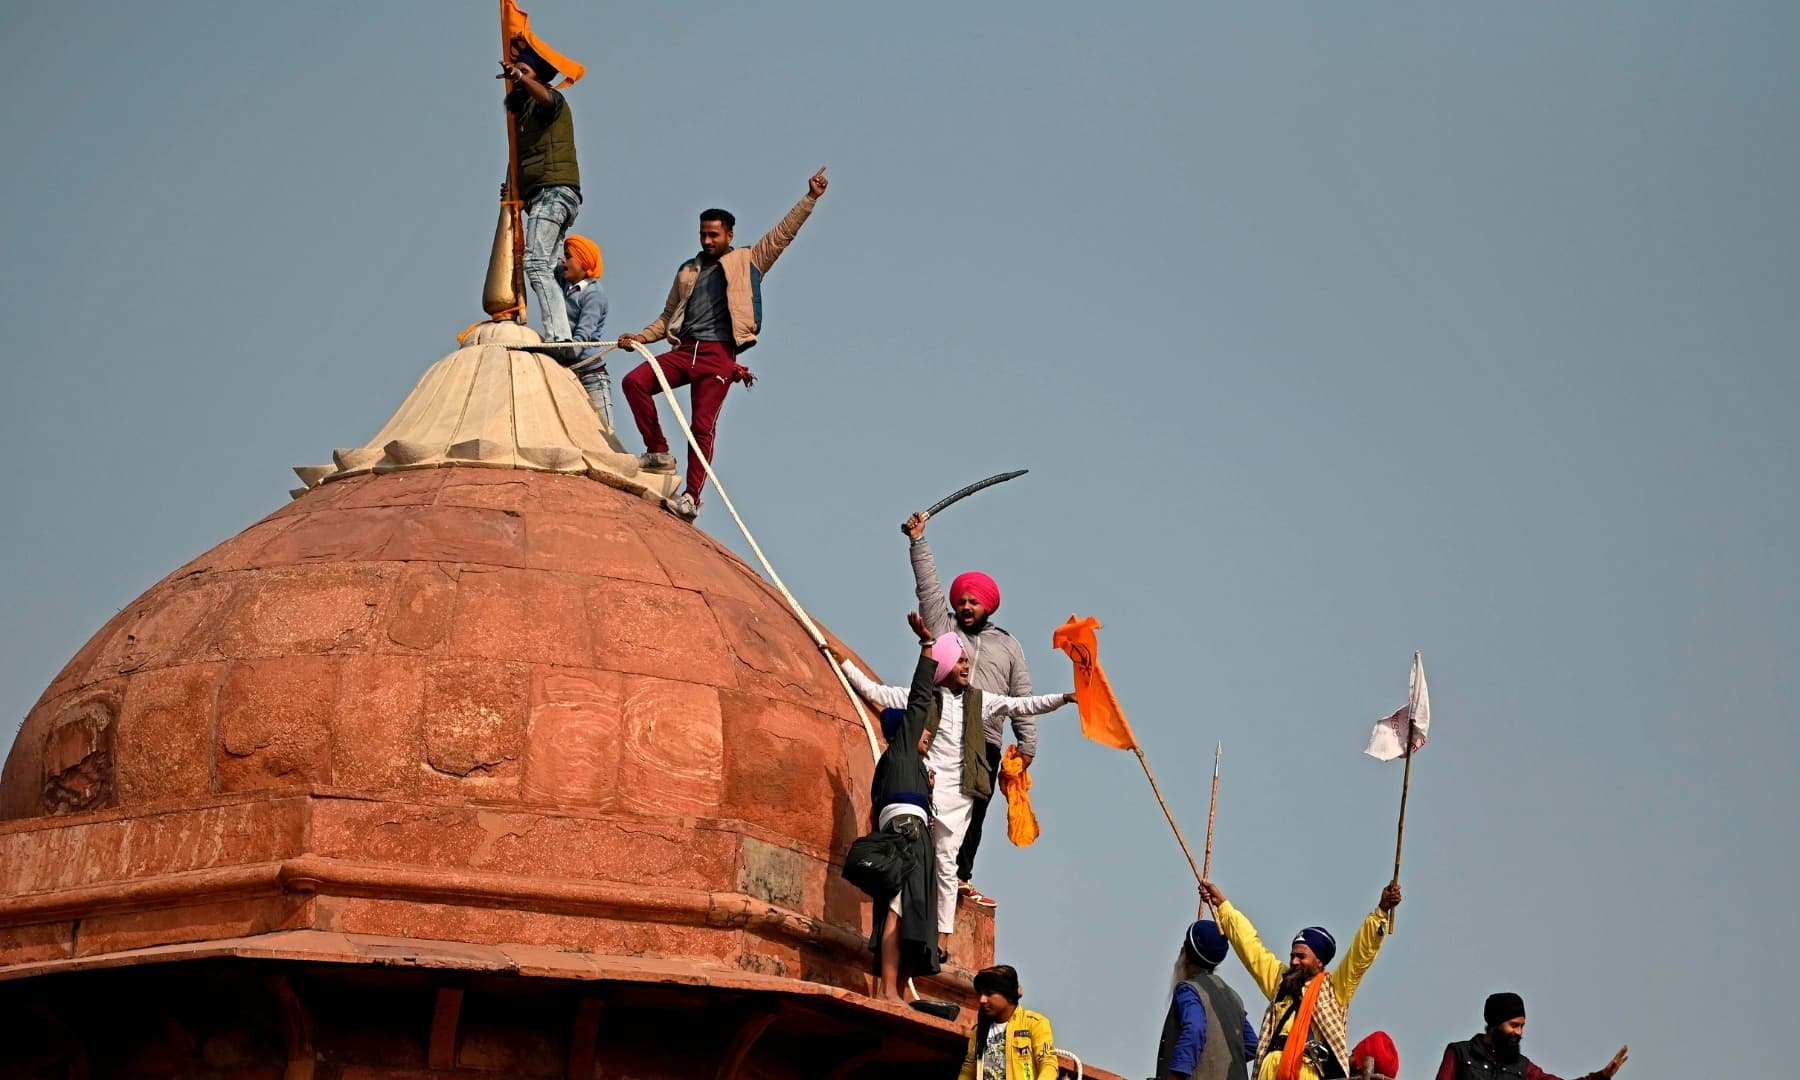 Protesters climb on a dome at the ramparts of the Red Fort as farmers continue to demonstrate against the Indian government's recent agricultural reforms in New Delhi on January 26. — AFP